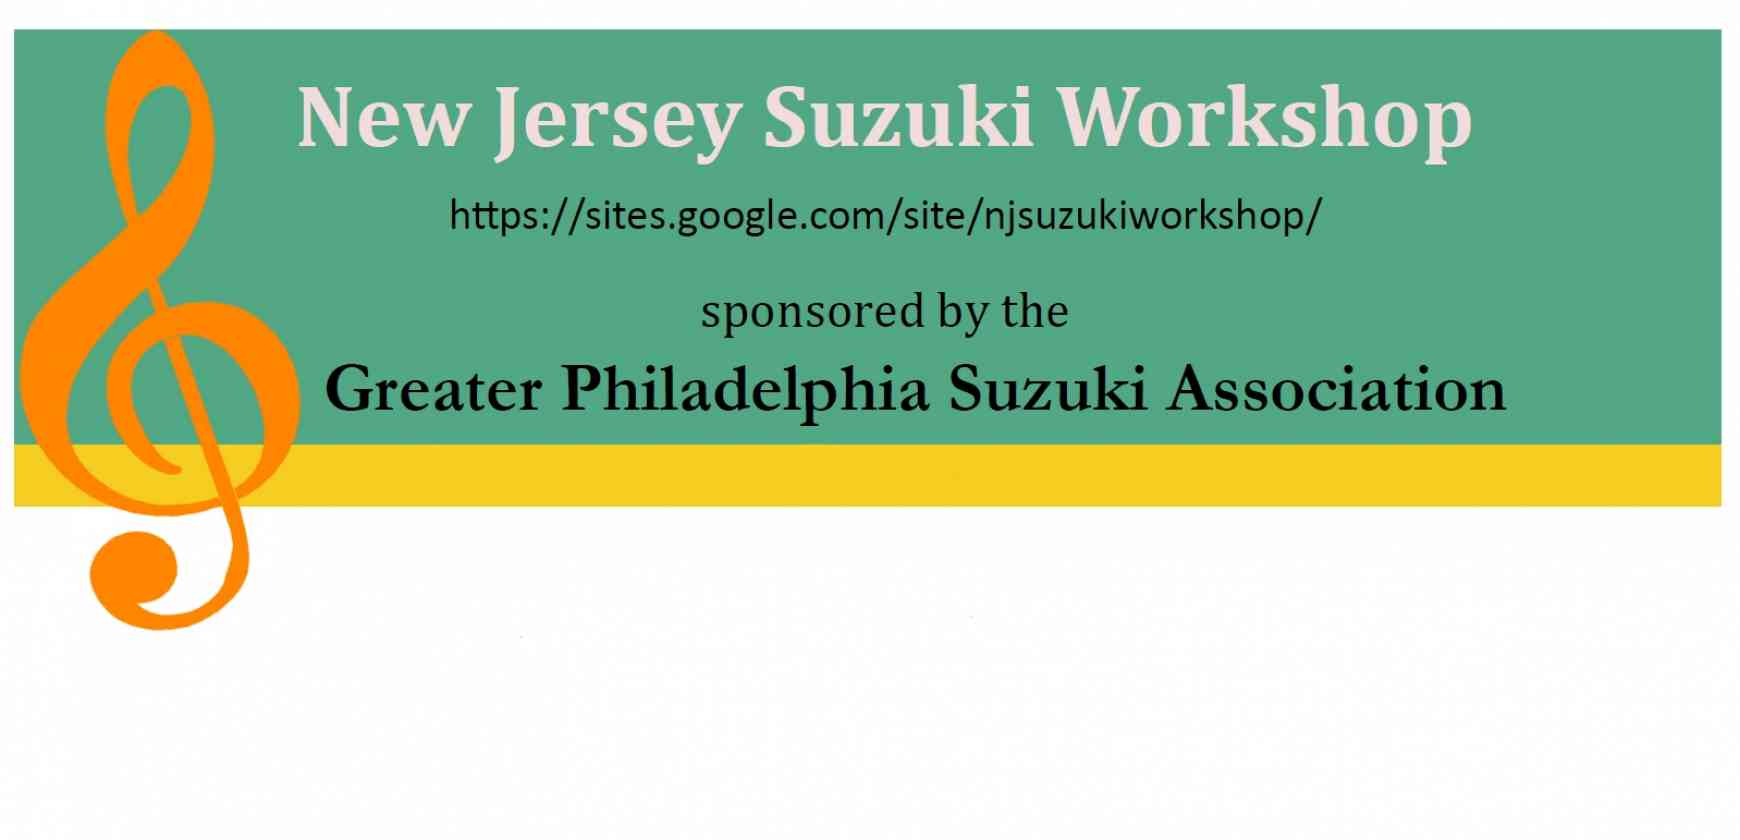 New Jersey Suzuki Workshop